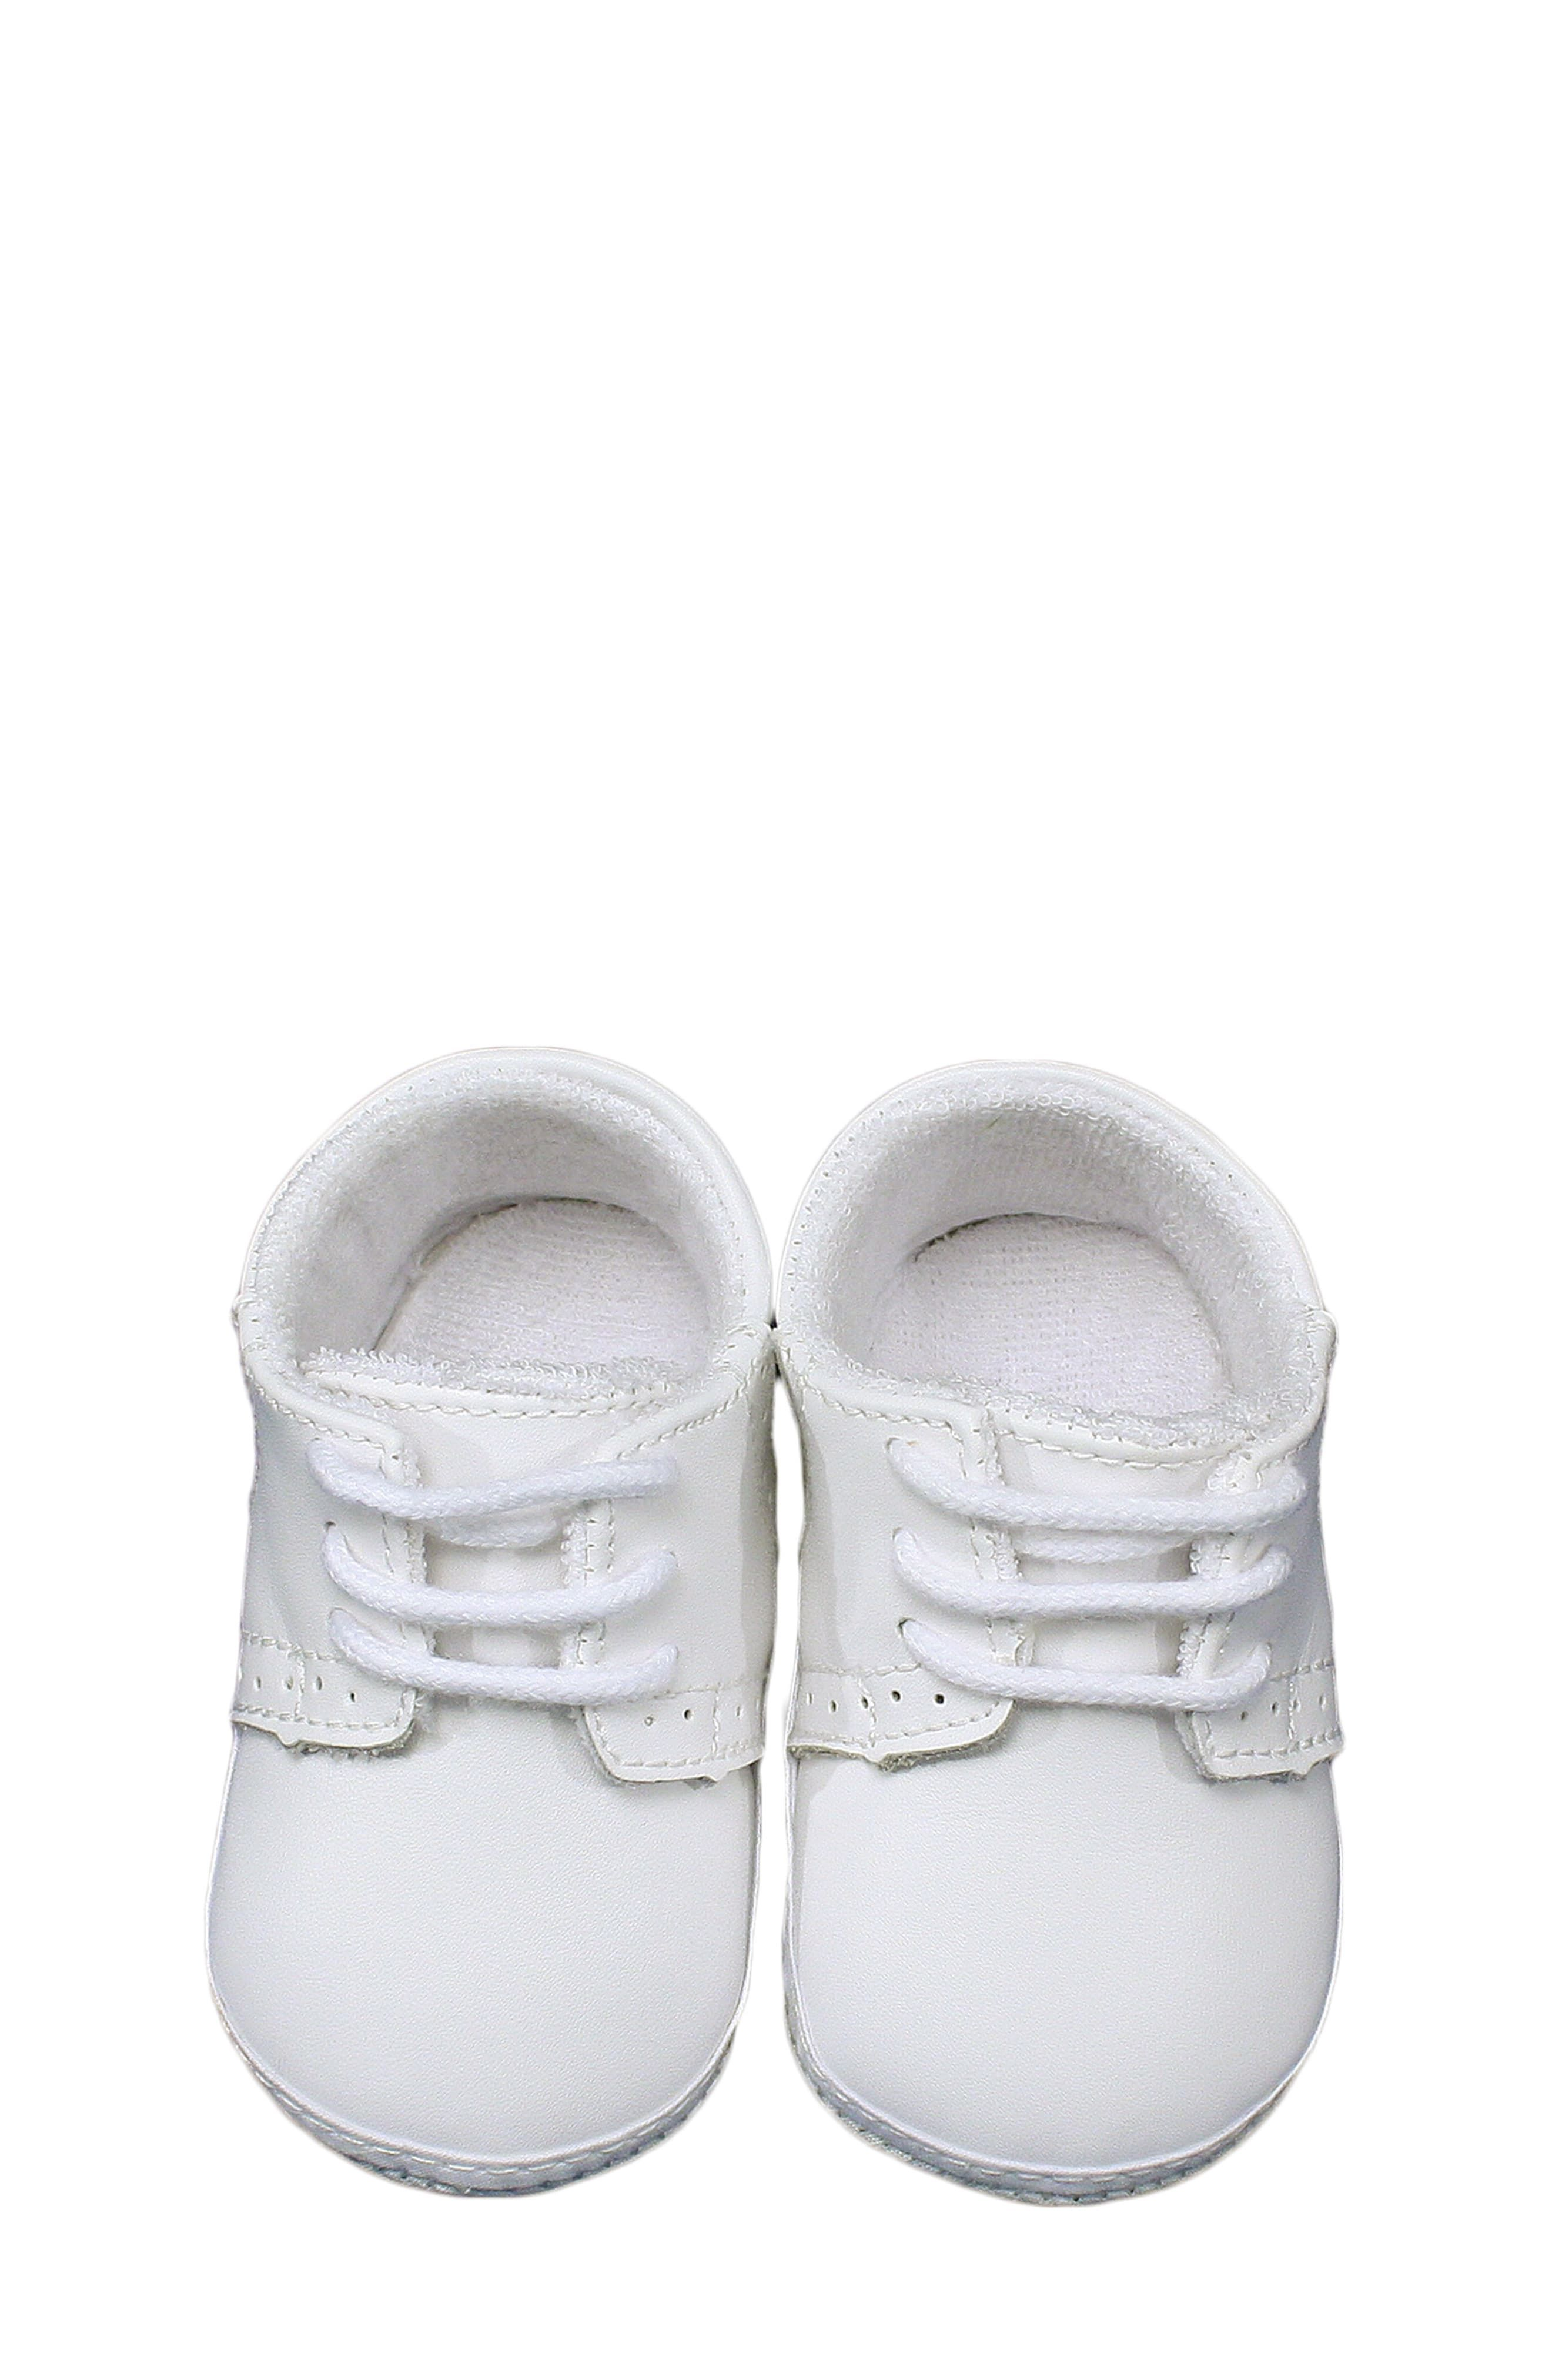 Infant Boy's Little Things Mean A Lot Leather Crib Shoe ...